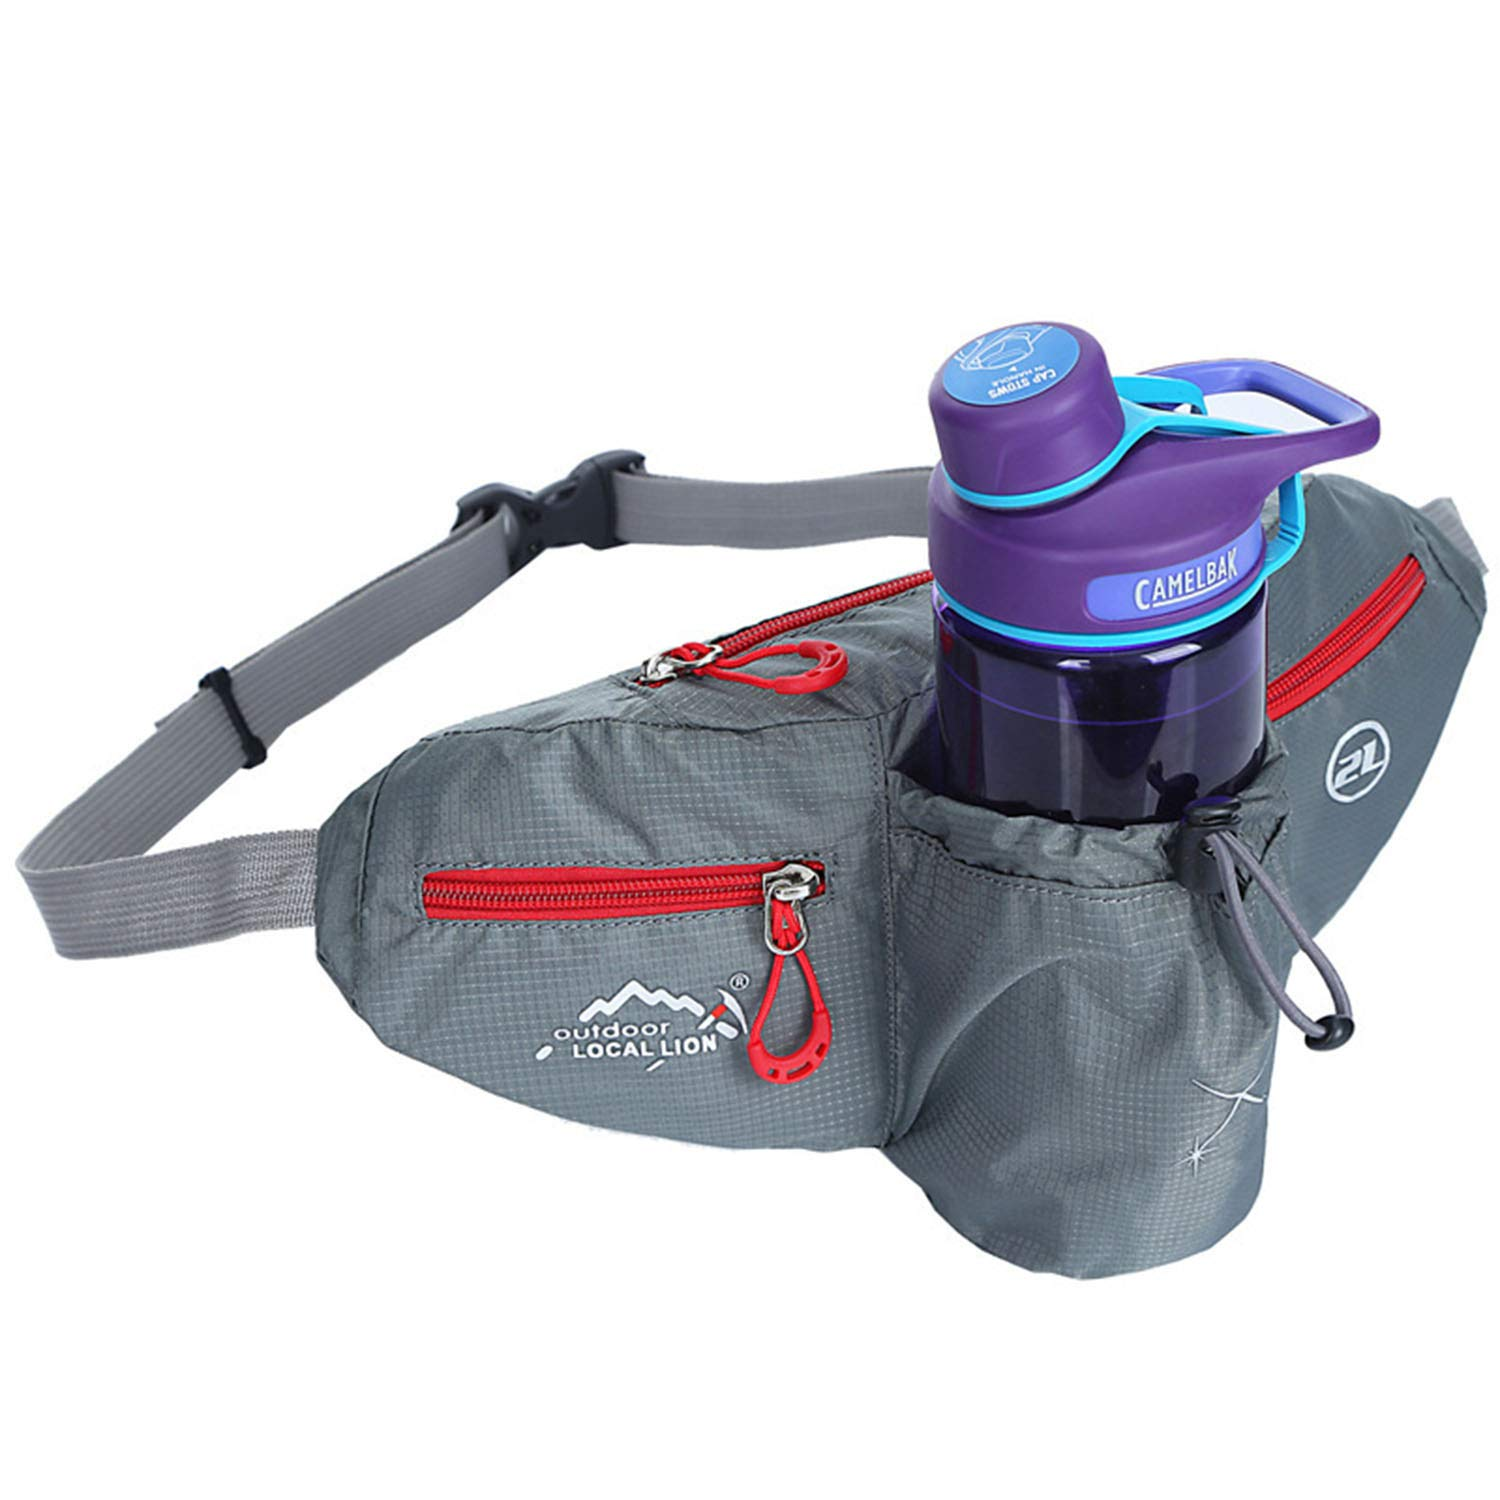 Outdoo Hiking Waist Pack Bum Bag with Bottle Holder Running Bag for Camping Climbing Travel Cycling and Dog Walking,A,3213cm